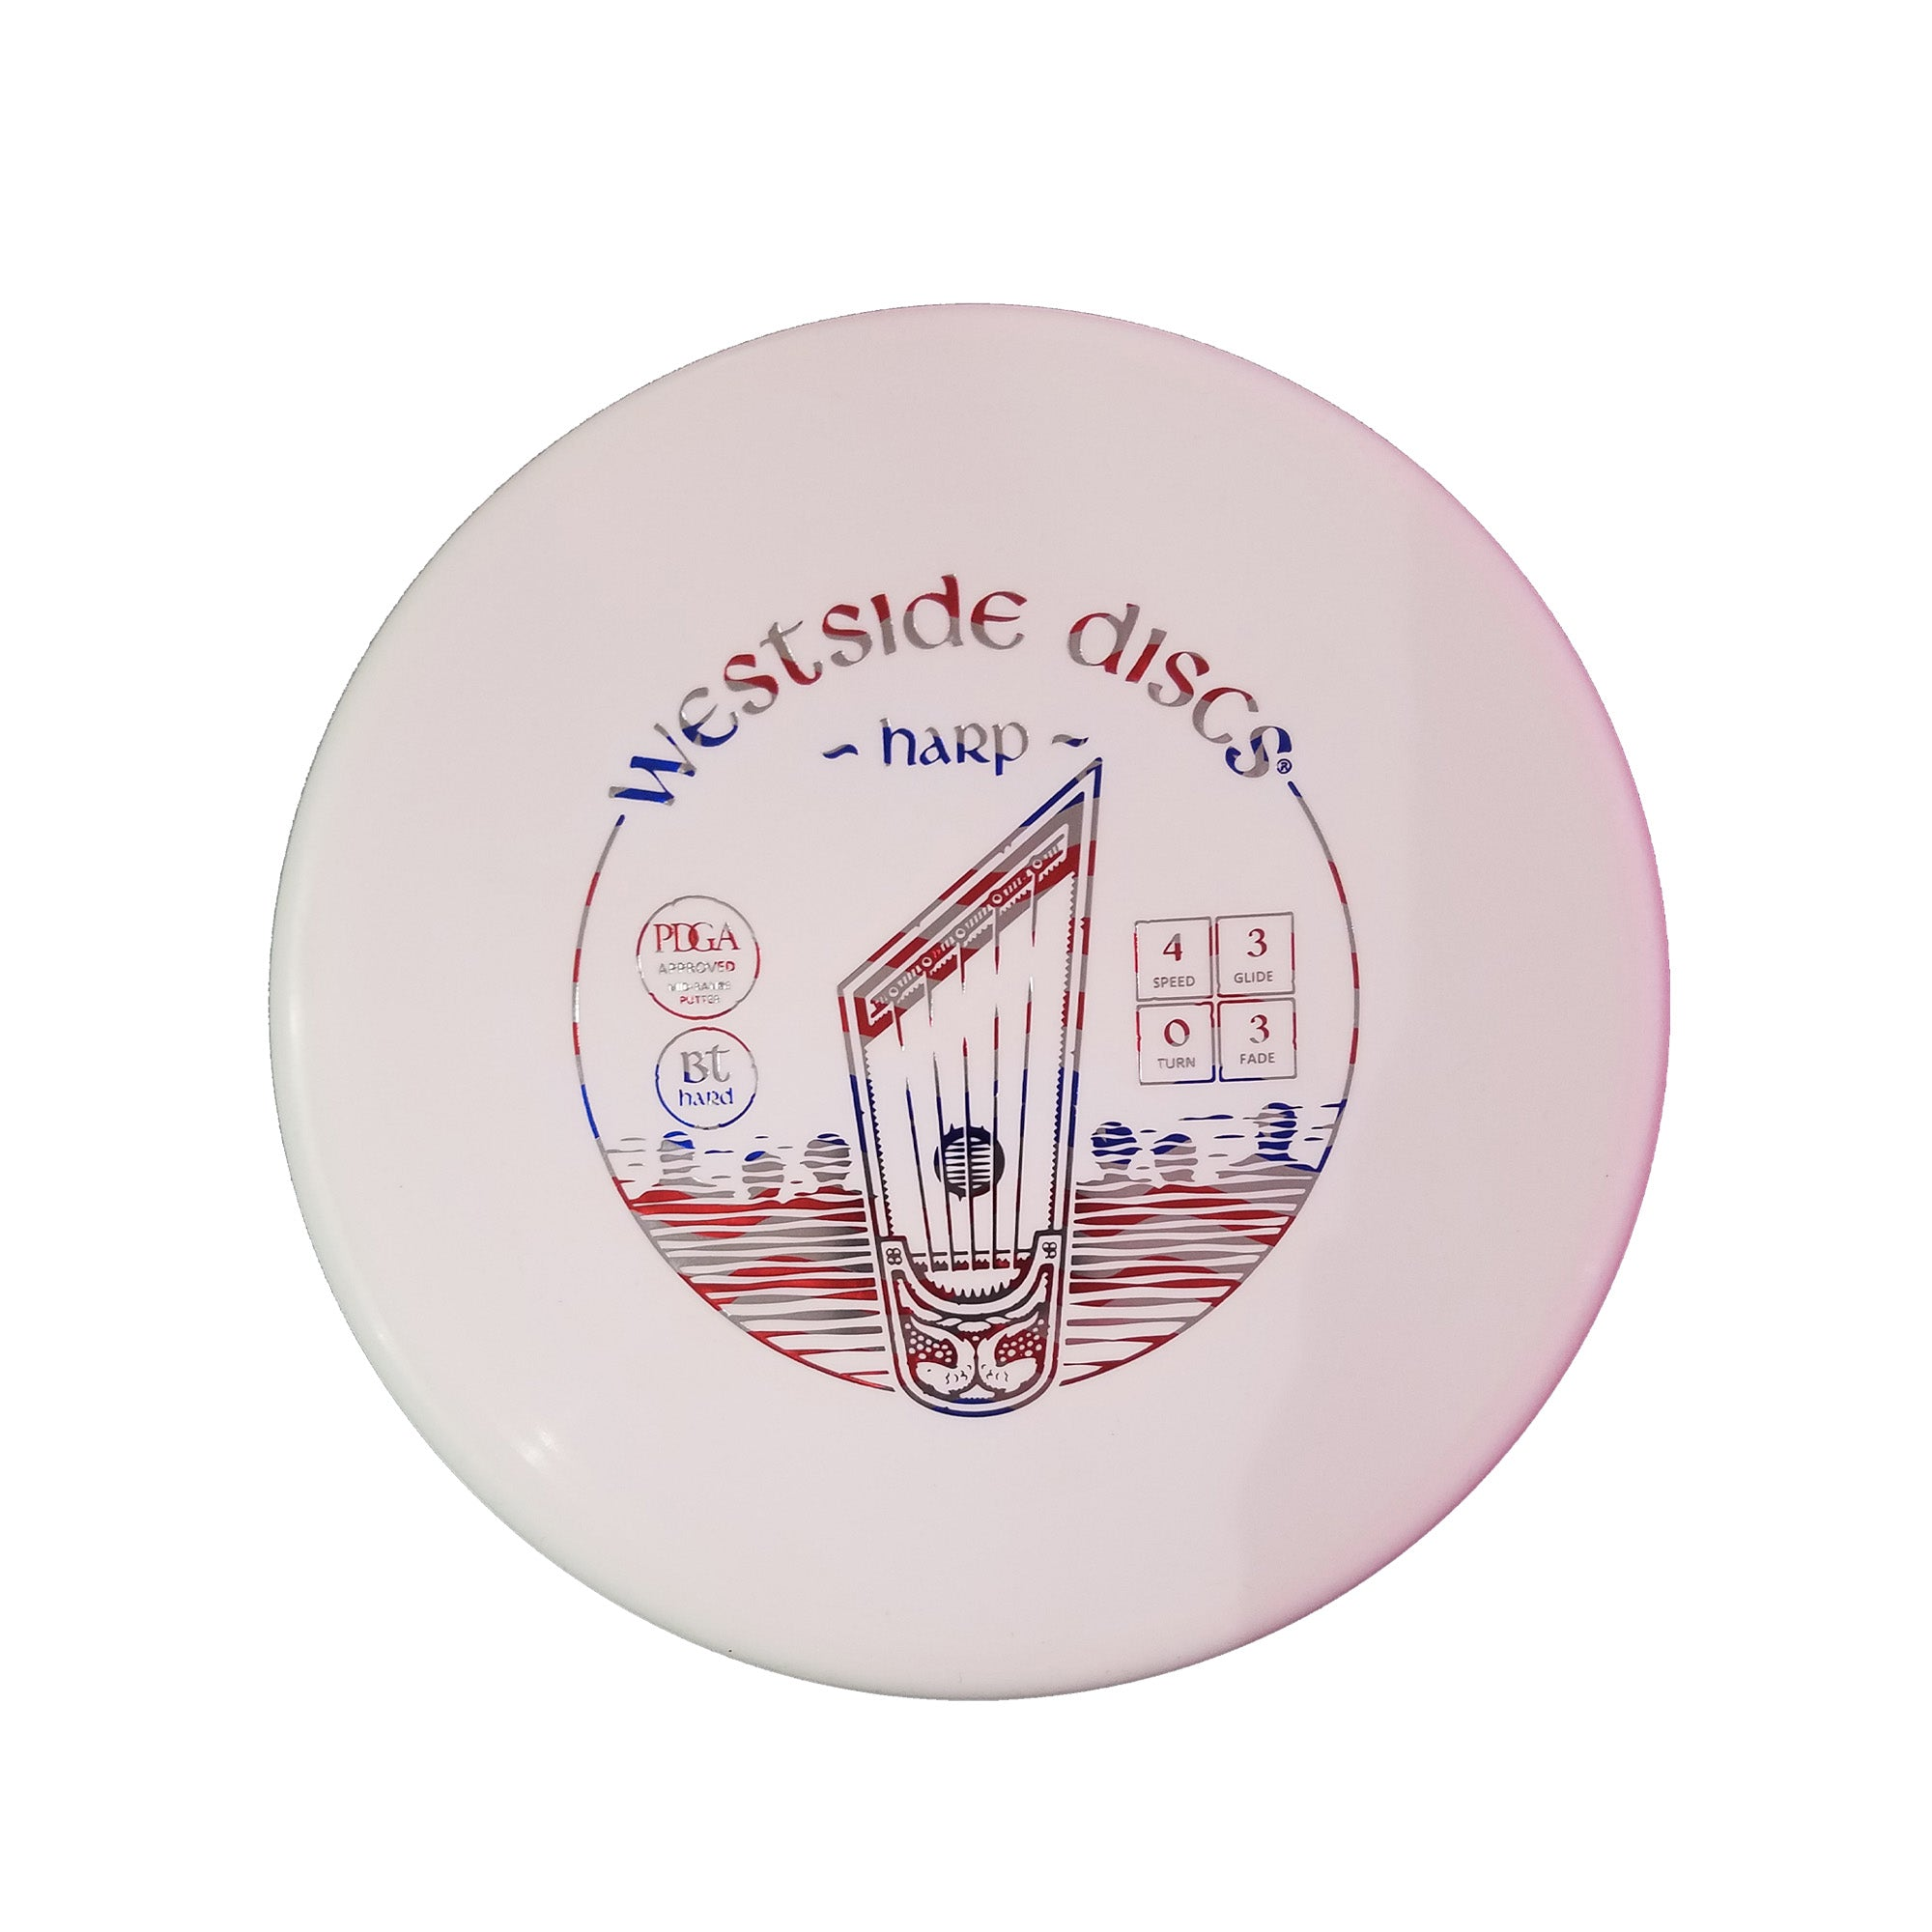 Westside Discs BT Hard Harp Putter Disc - 173g